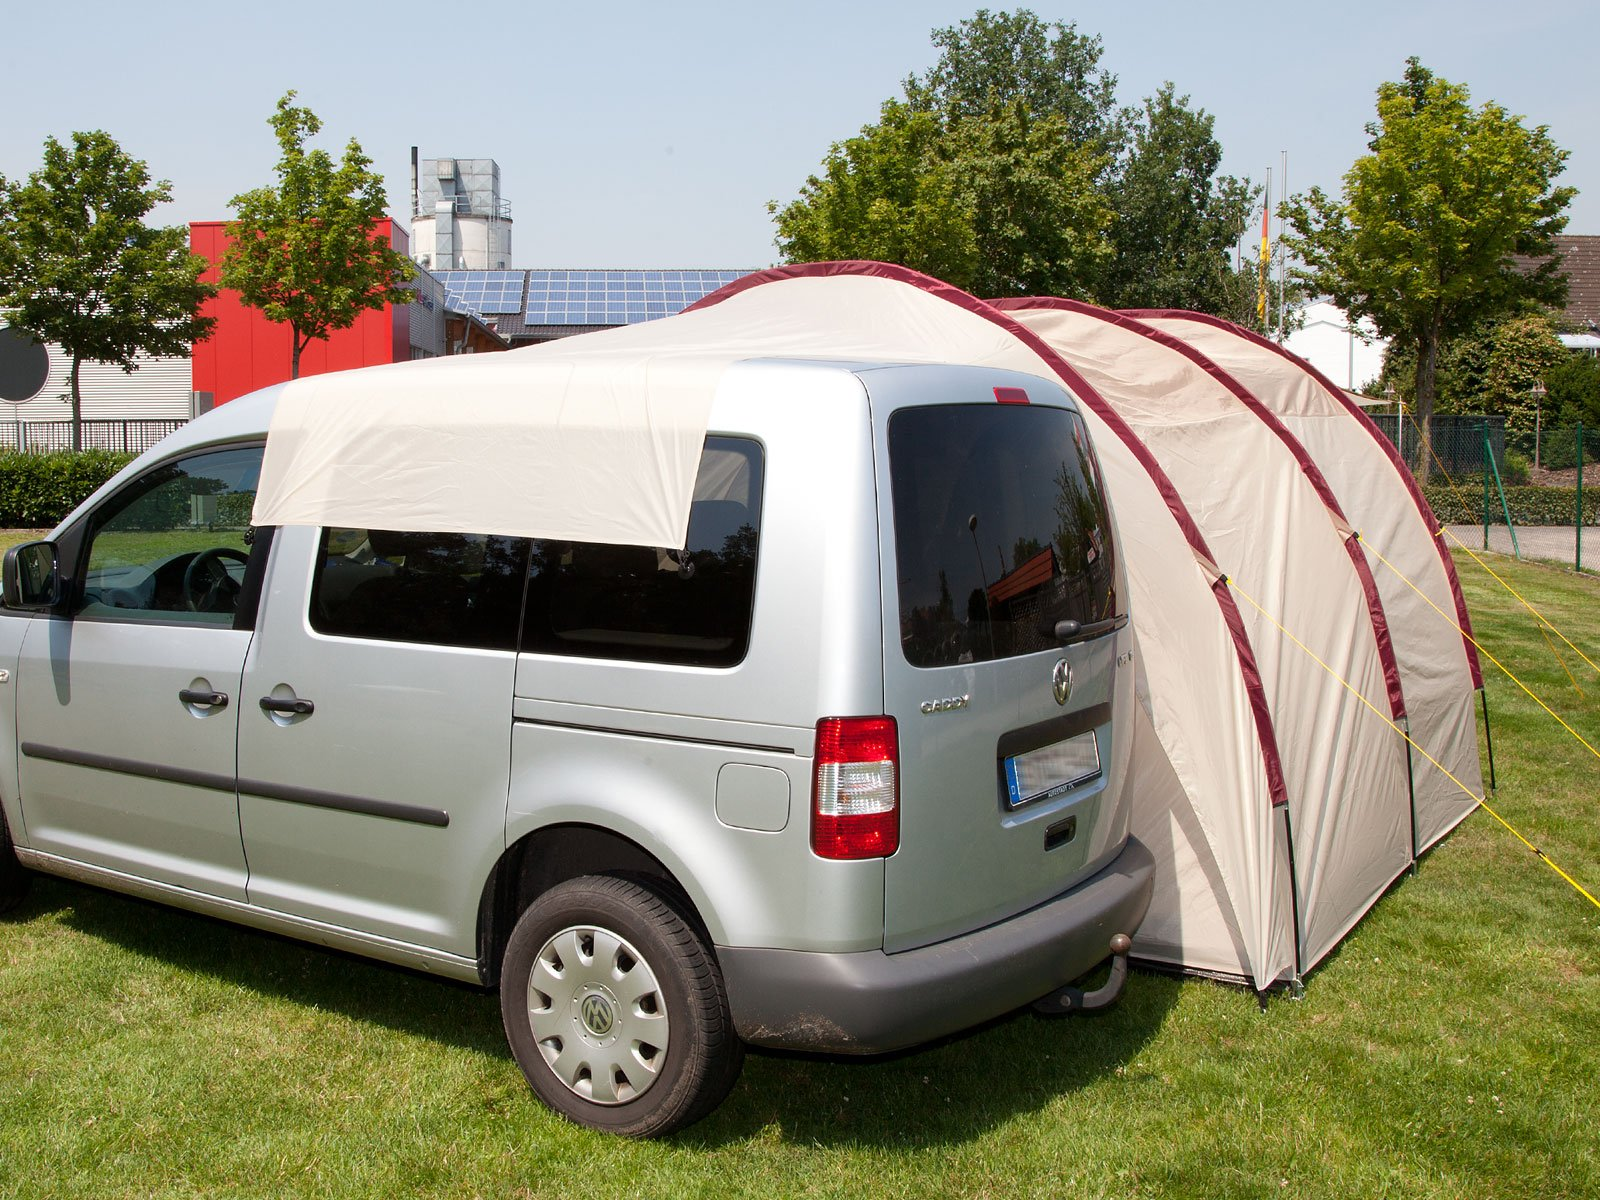 Skandika Camper Tramp Free-Standing Minivan Awning Tent with 2-Berth Sleeping Cabin and 210 cm Peak Height, Sand/Red, 2 Persons 9